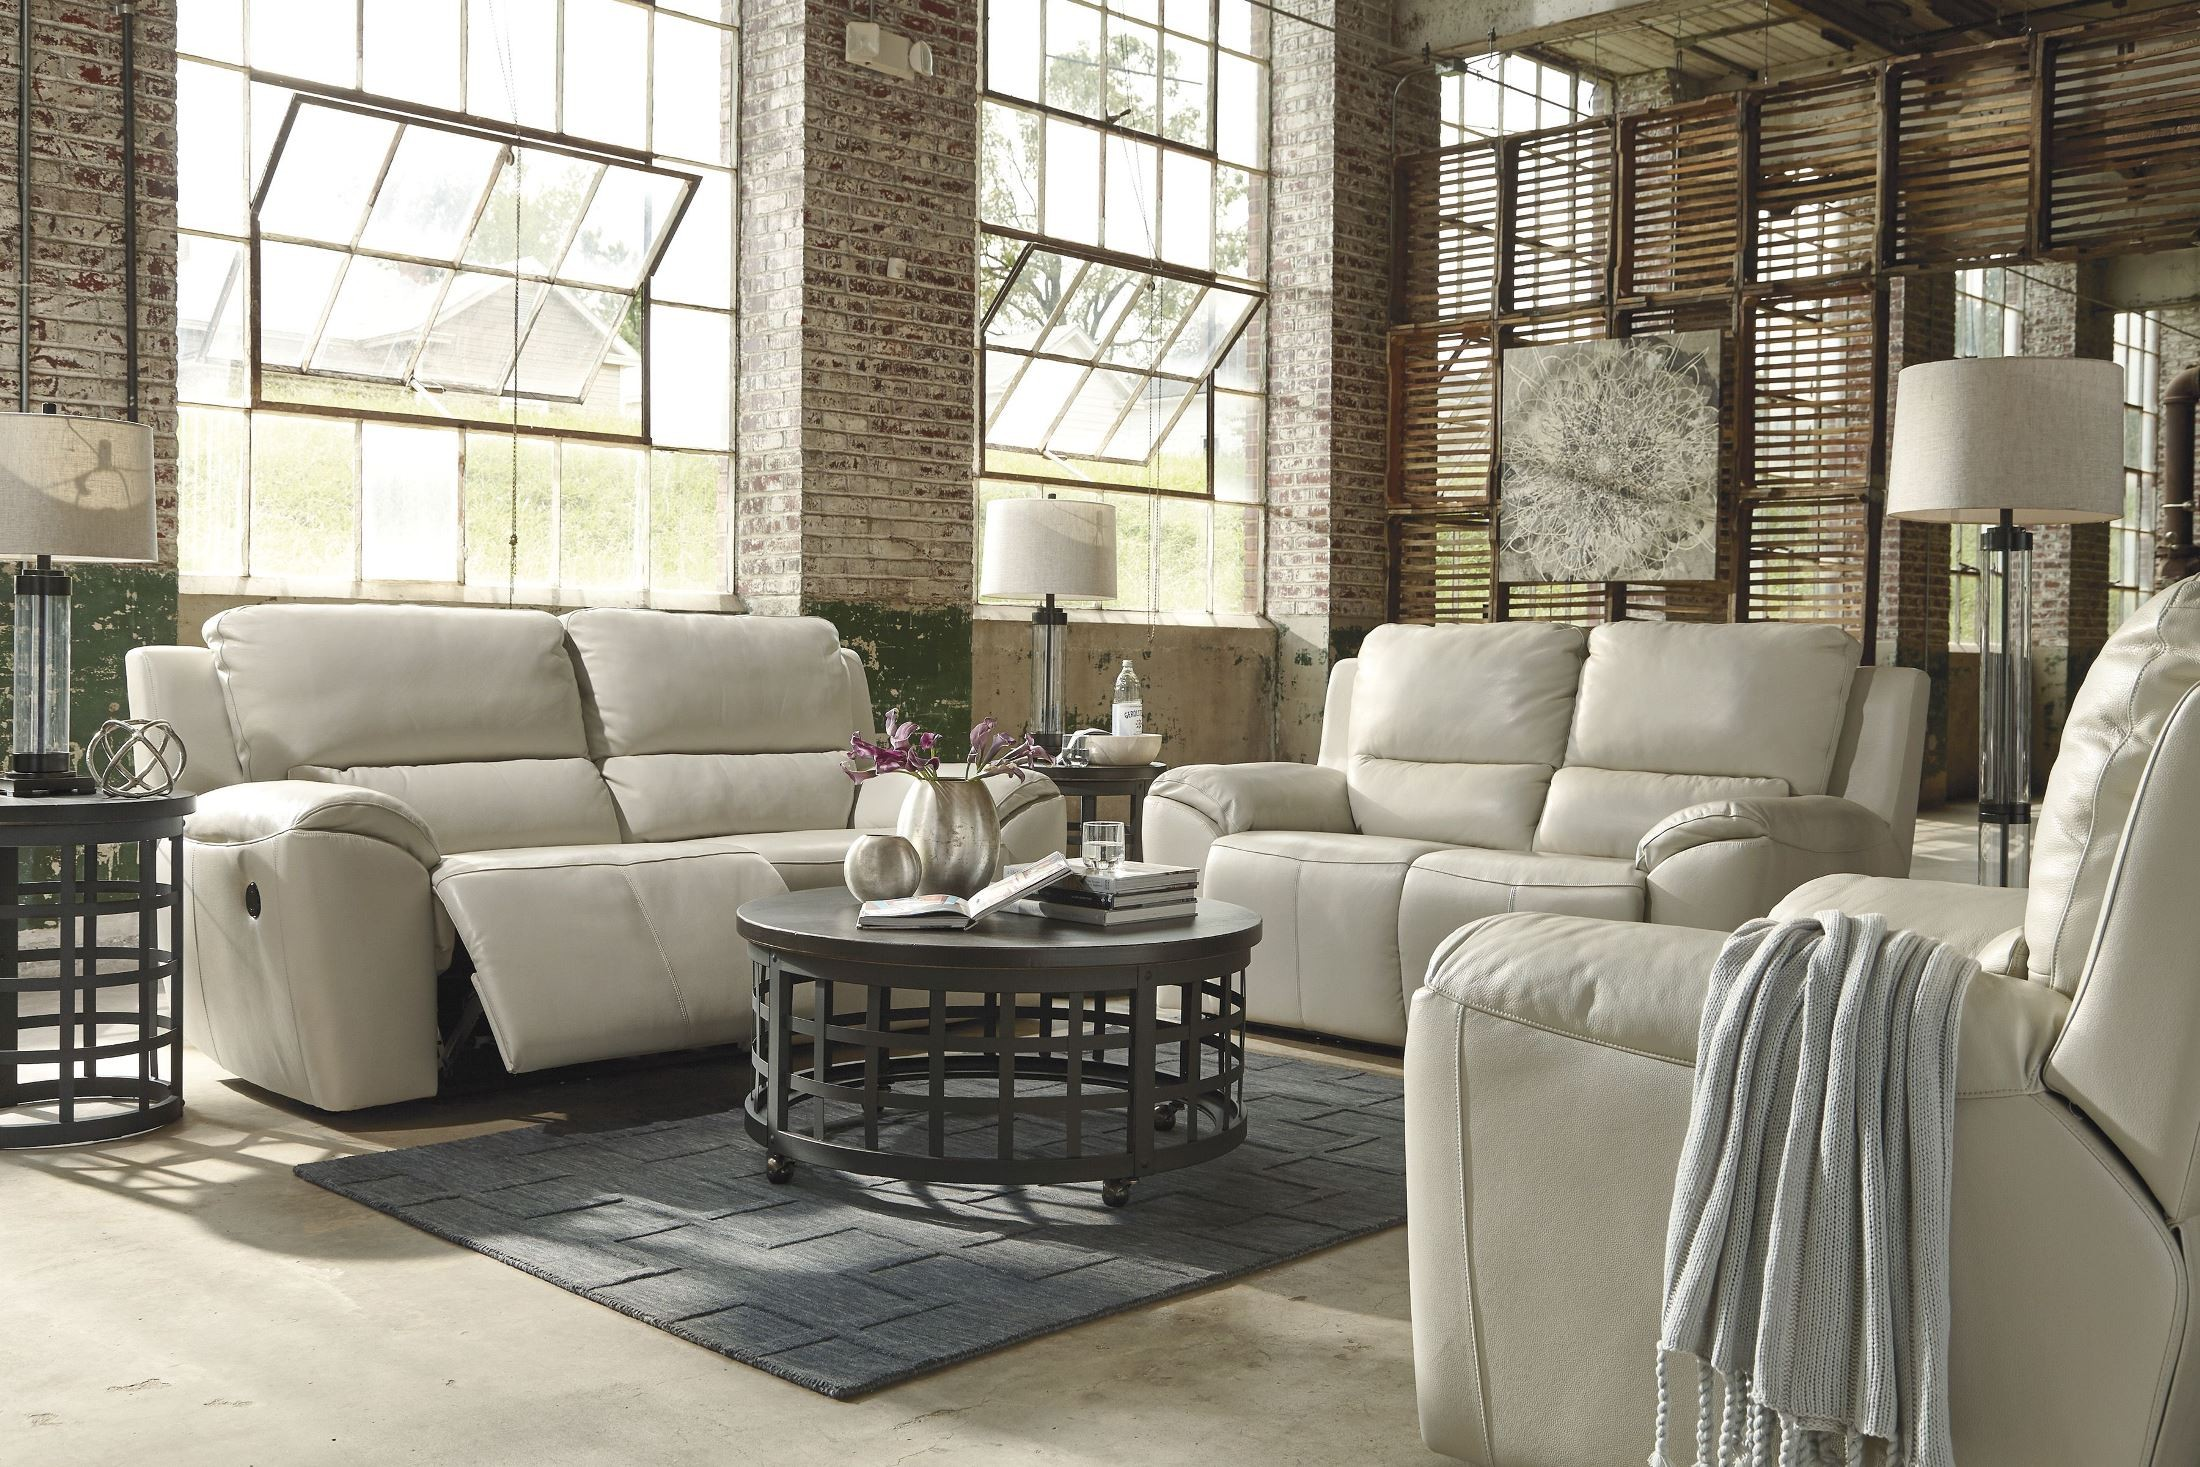 Sofa Set Offer Up Valeton Cream Power Reclining Living Room Set From Ashley